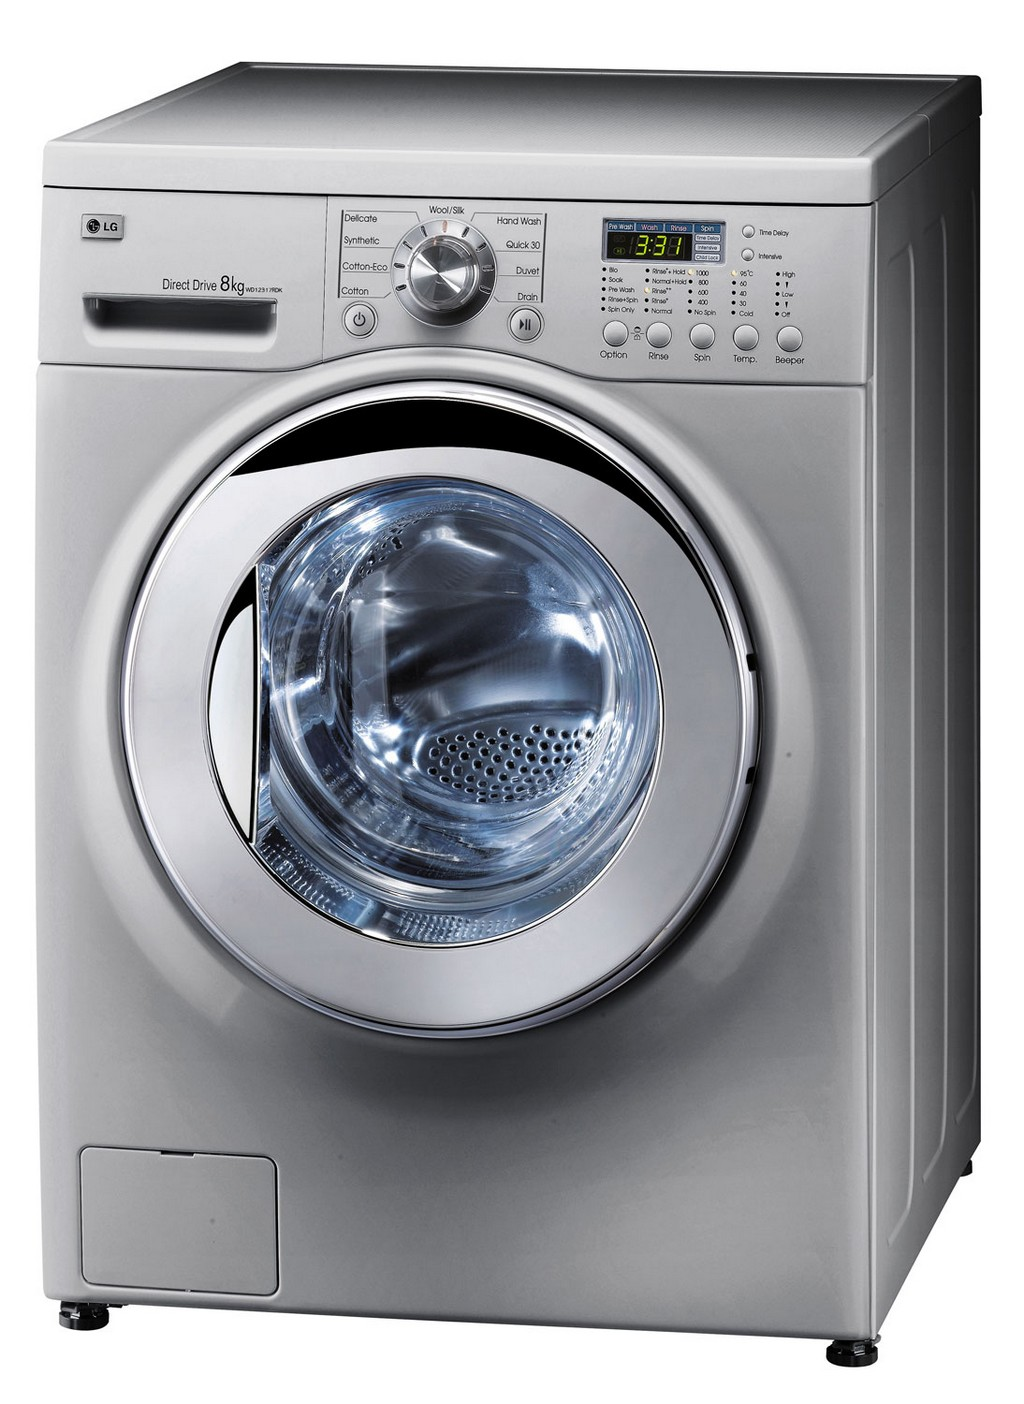 Washing machine | US-machine.com